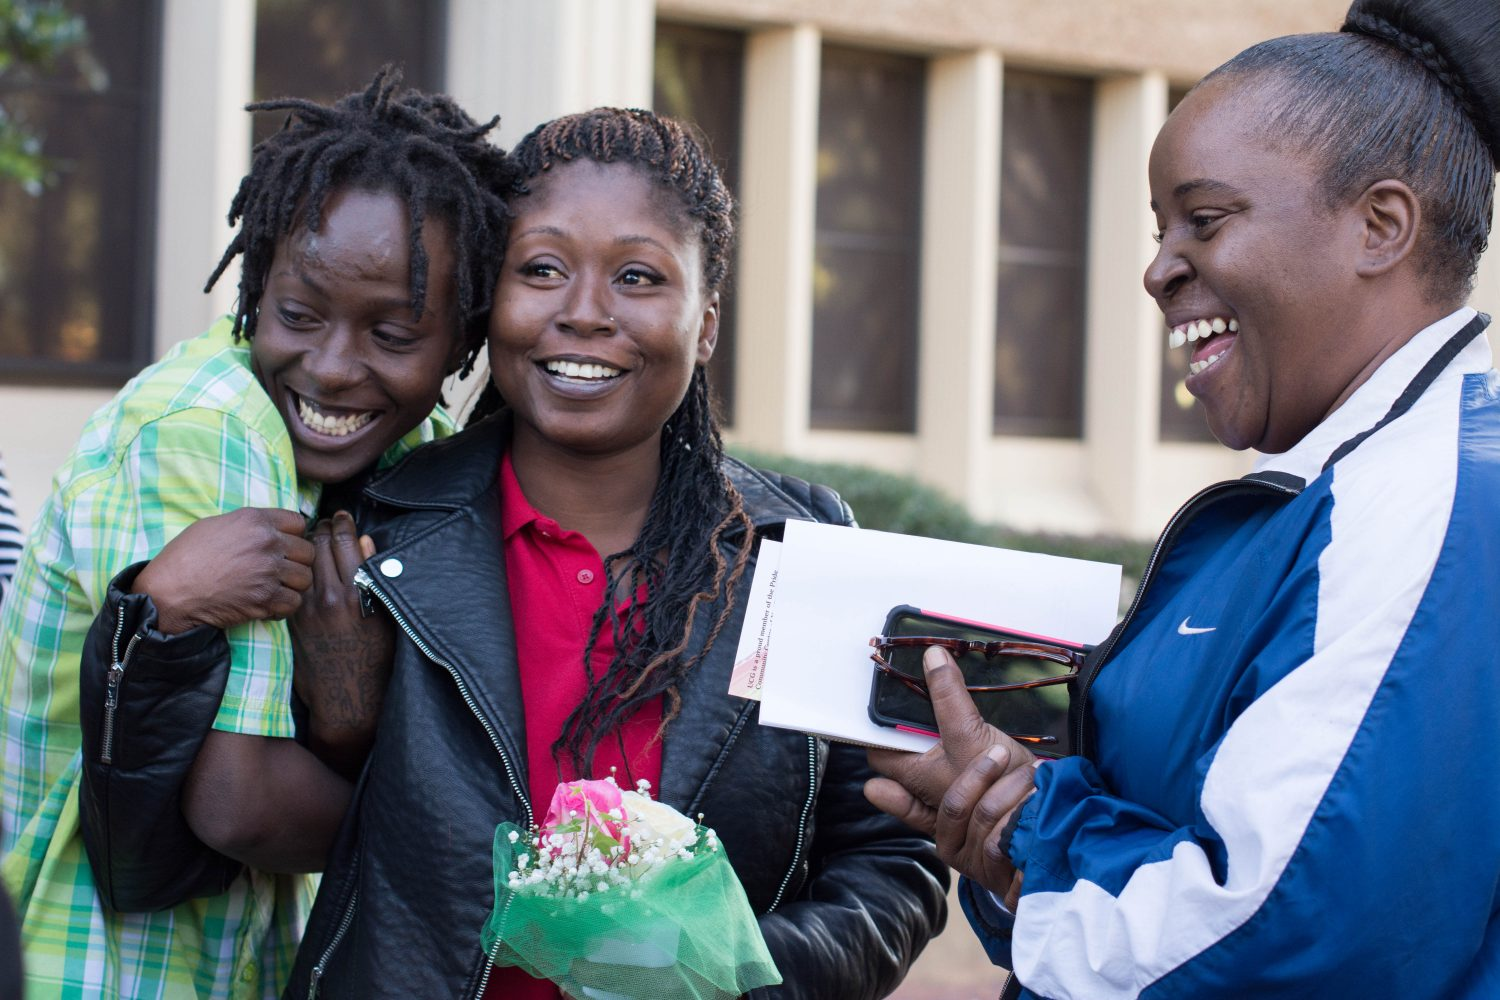 Gainesville newlywed Quintyra White embraces wife, LaKindra Ellis-White after attaining their marriage license. Witness Stephanie Greer celebrates with them outside the Alachua County Courthouse on Tuesday, Jan. 6.